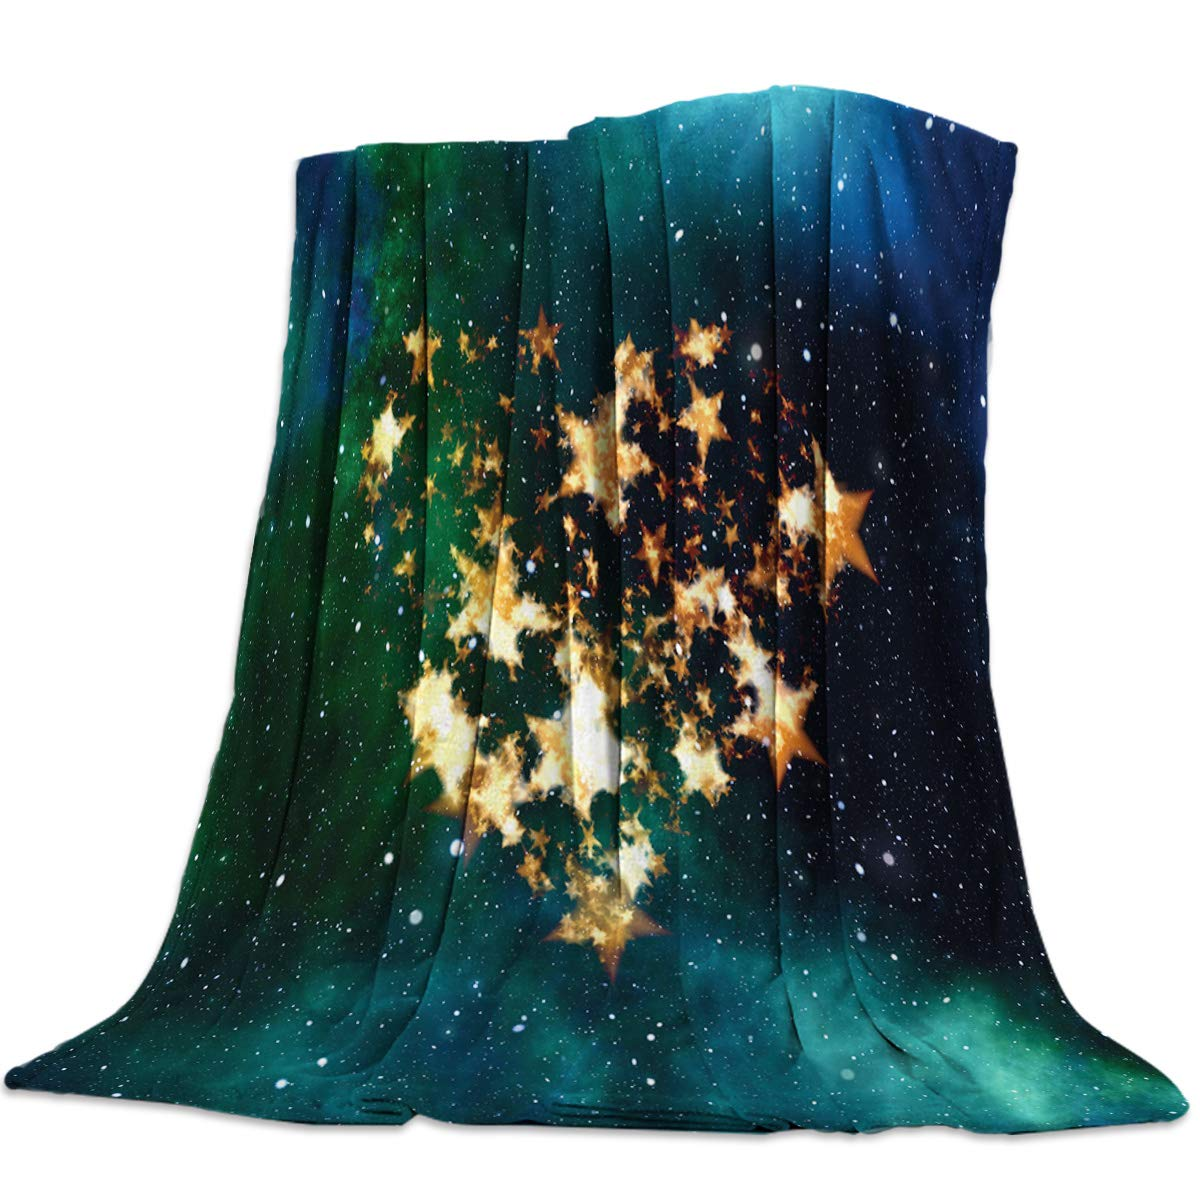 Starry Night11yag6392 49x59inch=125x150cm YEHO Art Gallery 49x59 Inch Flannel Fleece Bed Blanket Soft ThrowBlankets for Girls Boys,bluee Shark in The Deep Sea,Cozy Lightweight Blankets for Bedroom Living Room Sofa Couch